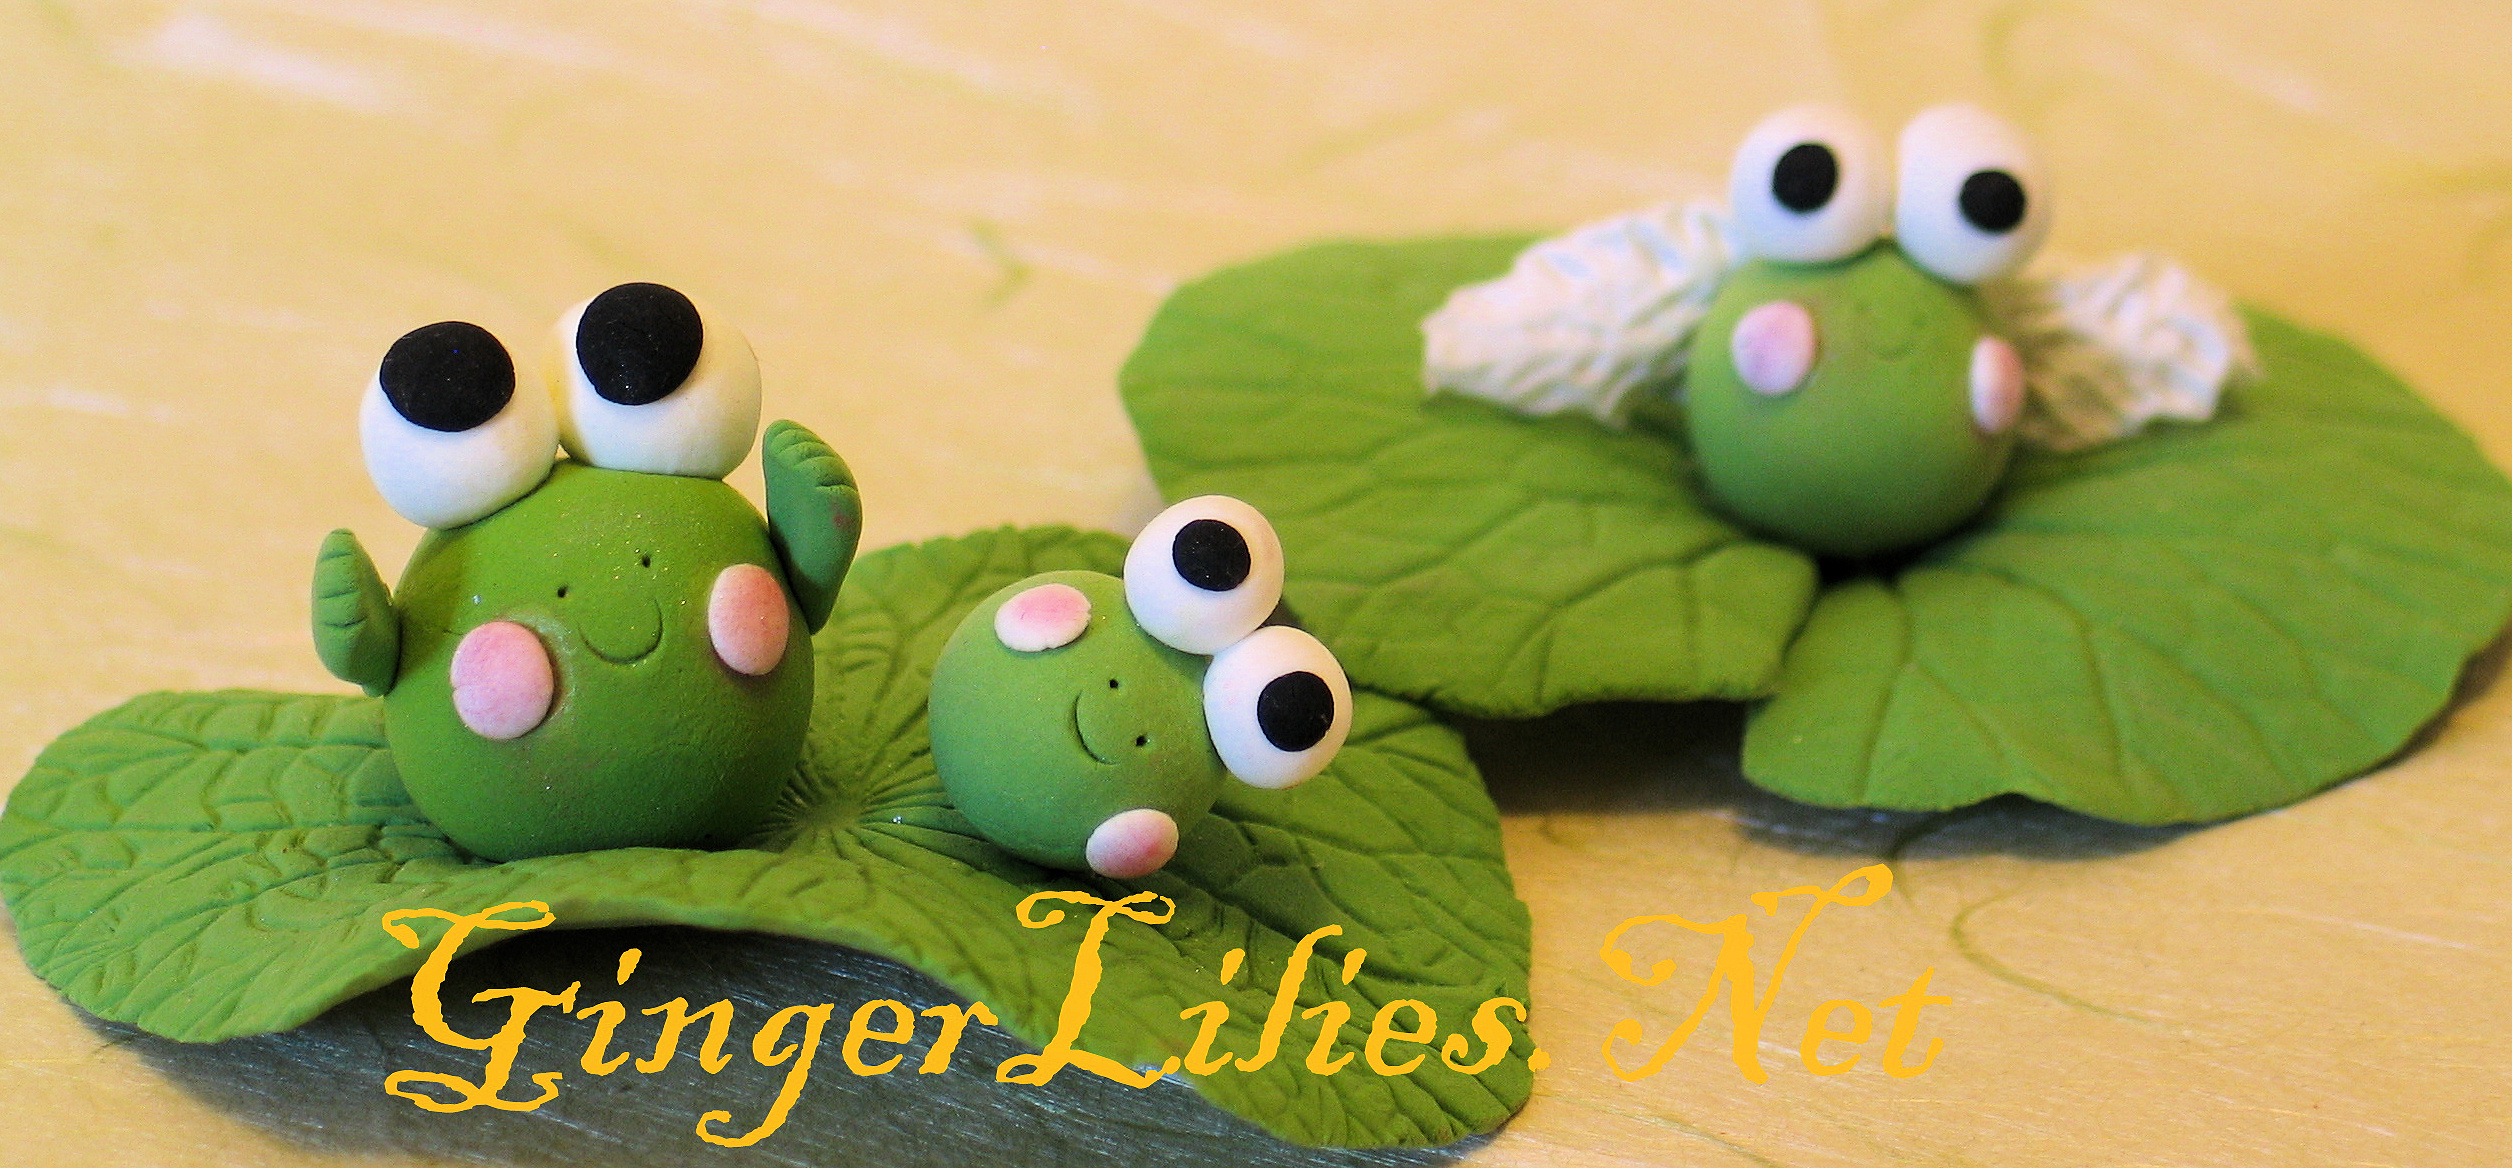 Handmade Clay Frogs on Lotus Leaves